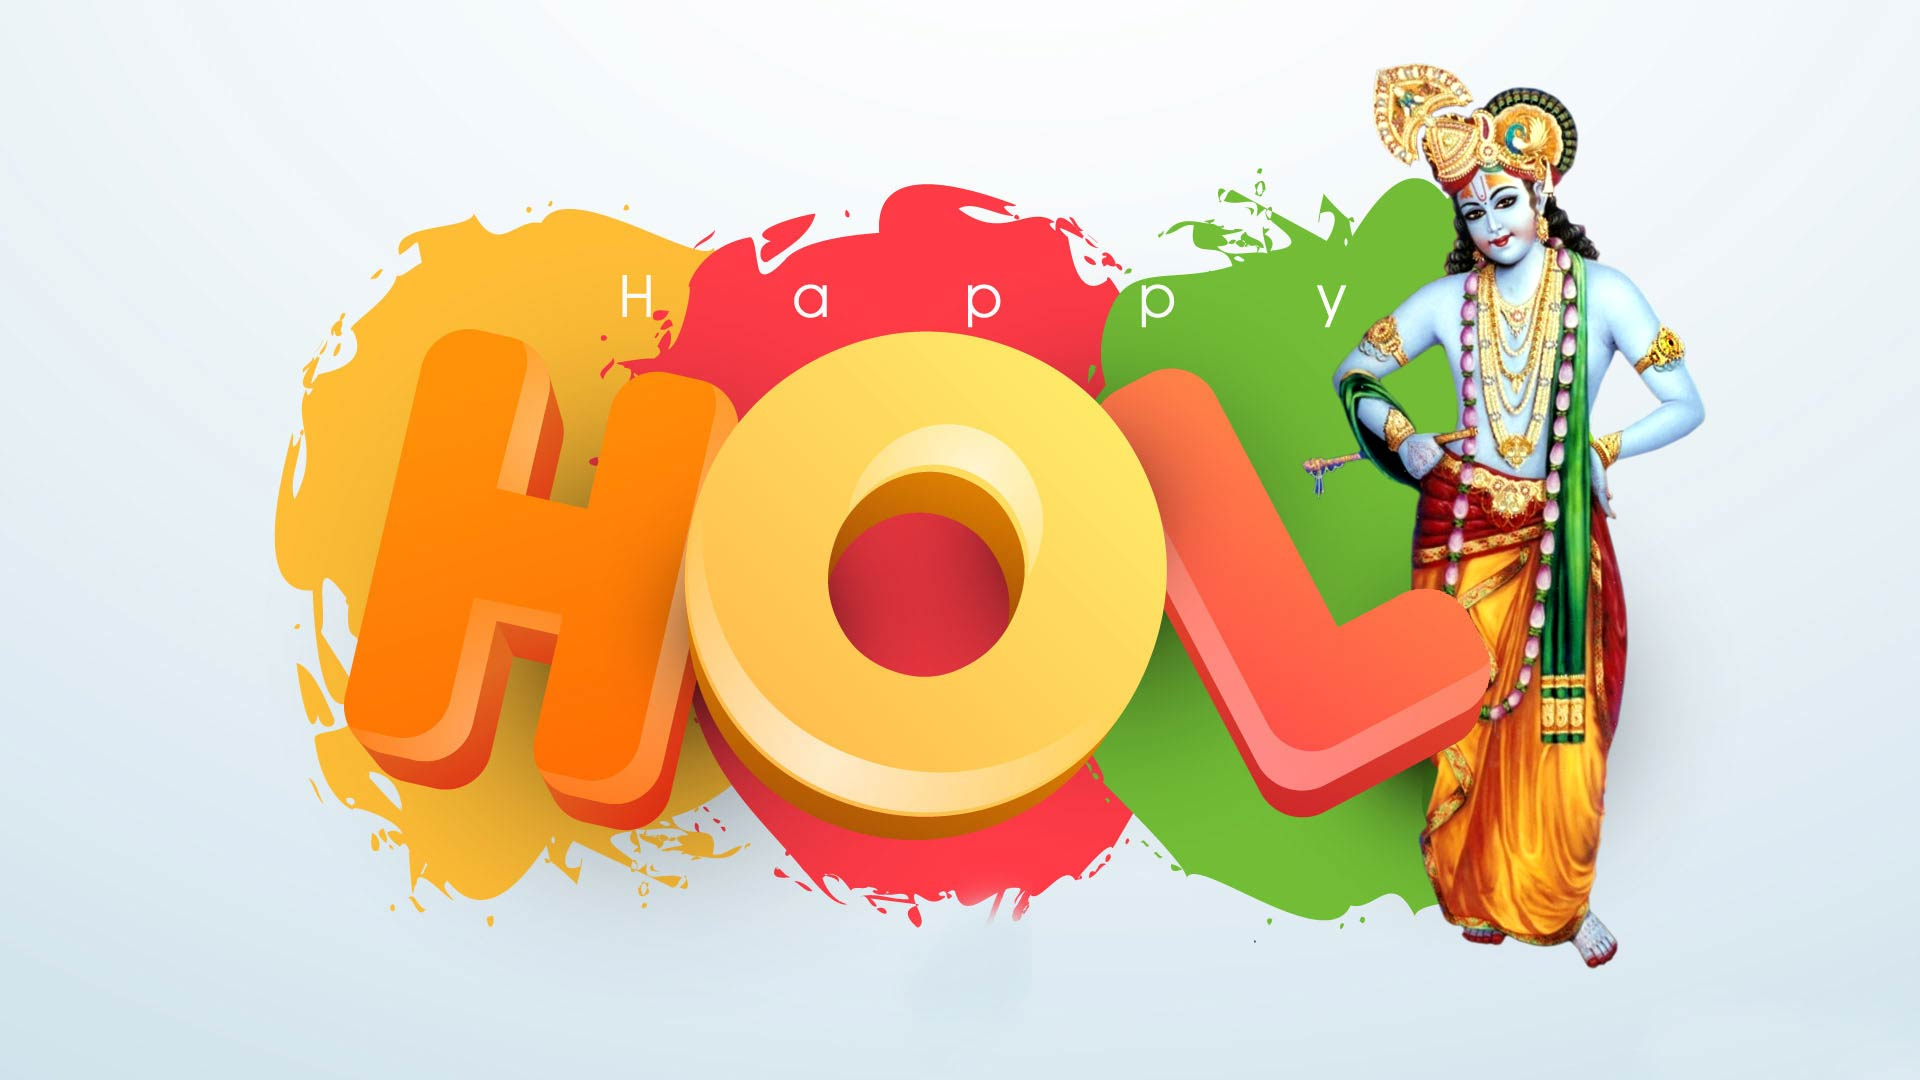 holi wallpaper hd 1080p